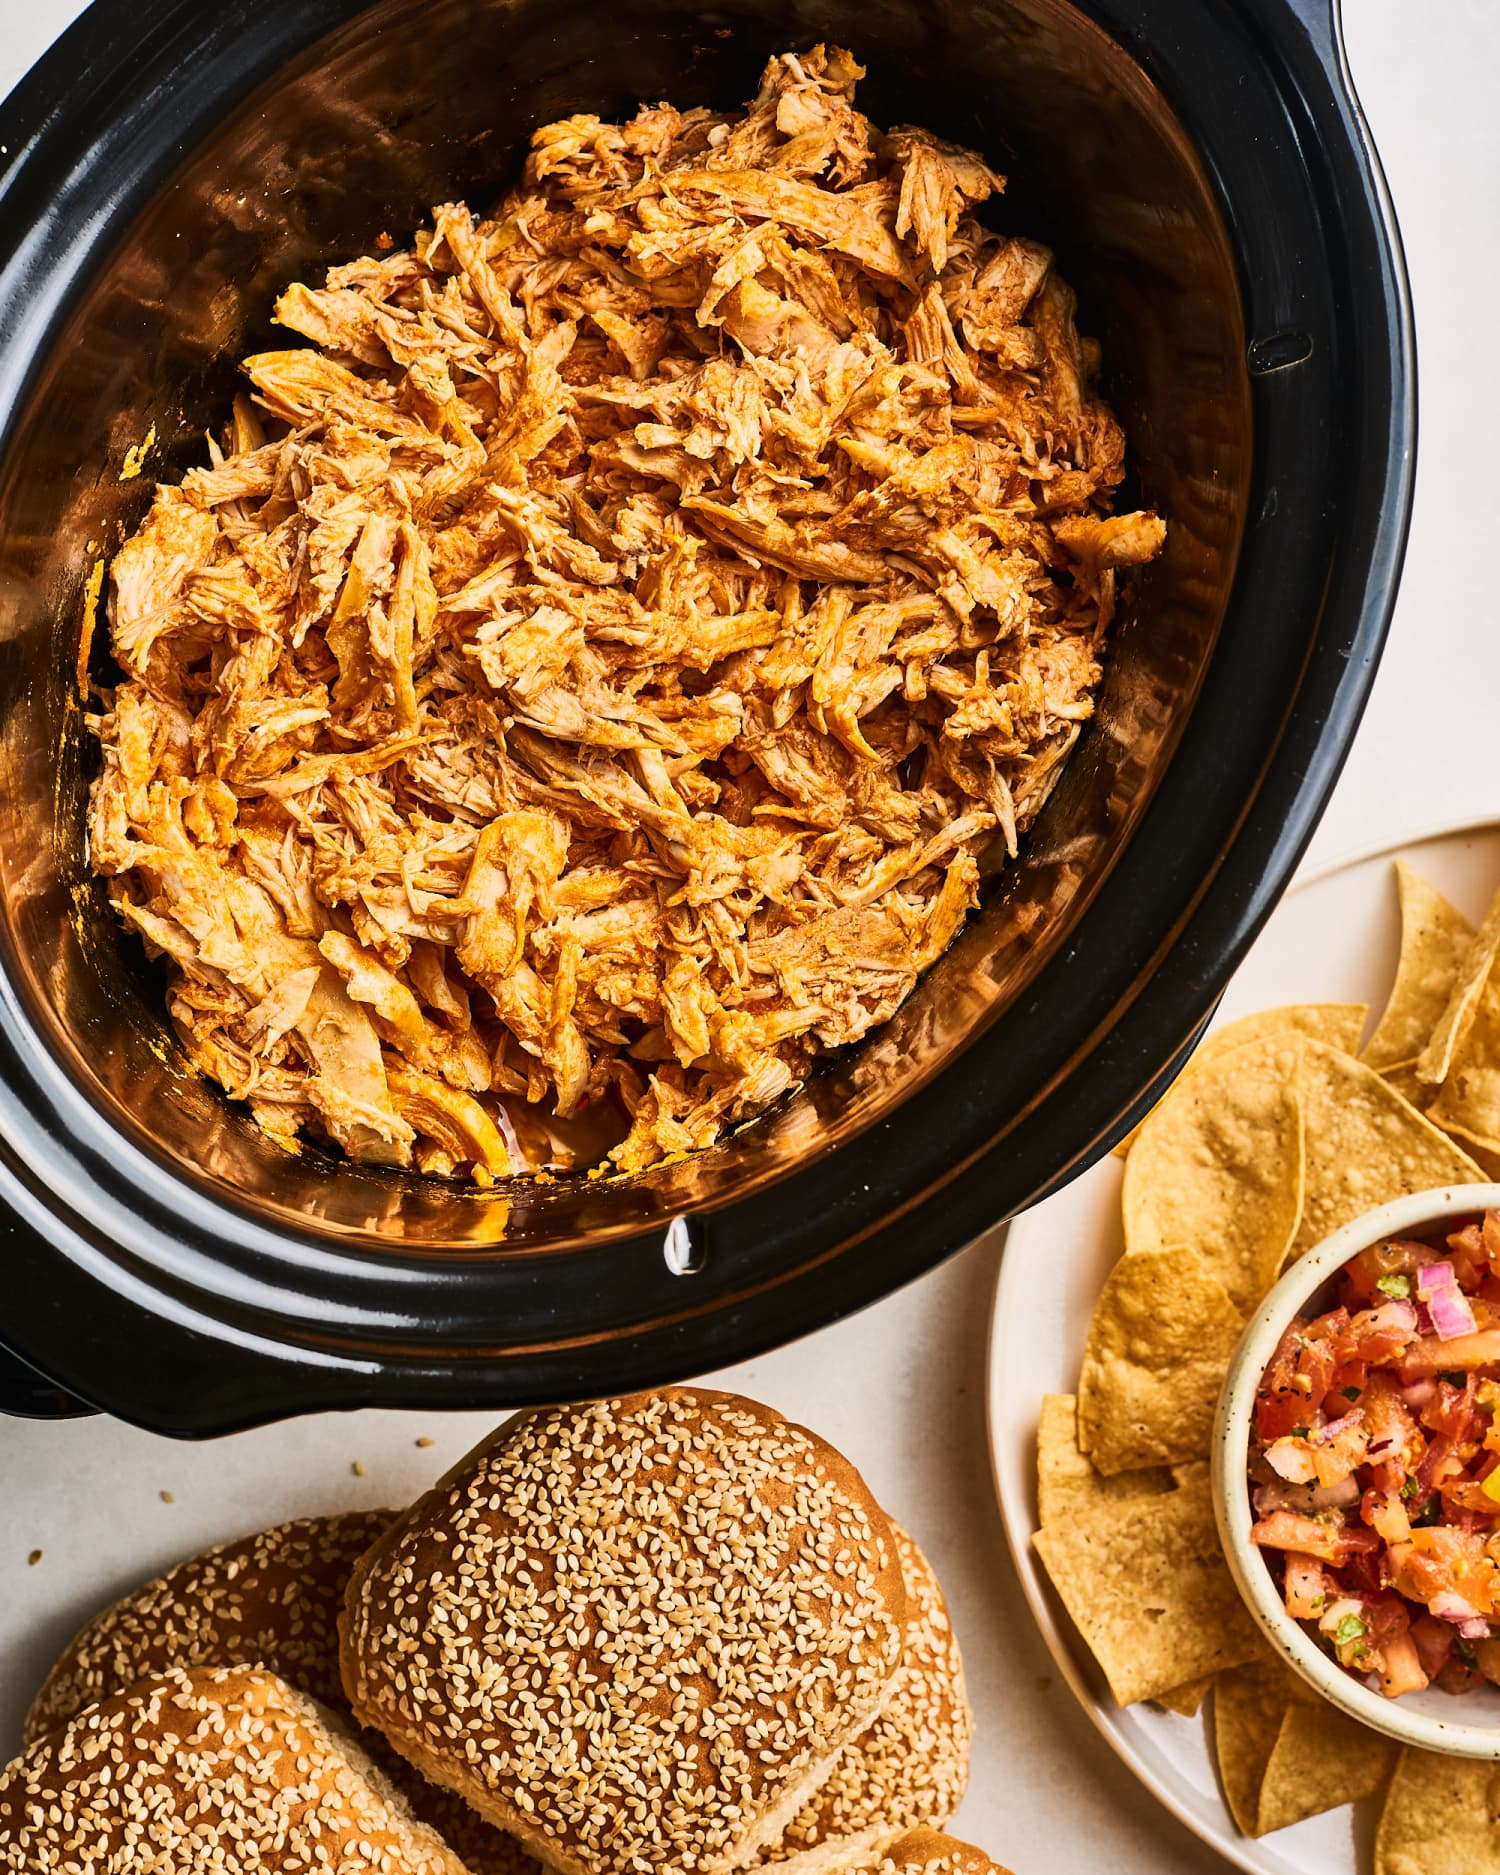 10 Low-Carb Slow Cooker Recipes That Don't Take Forever to Prep